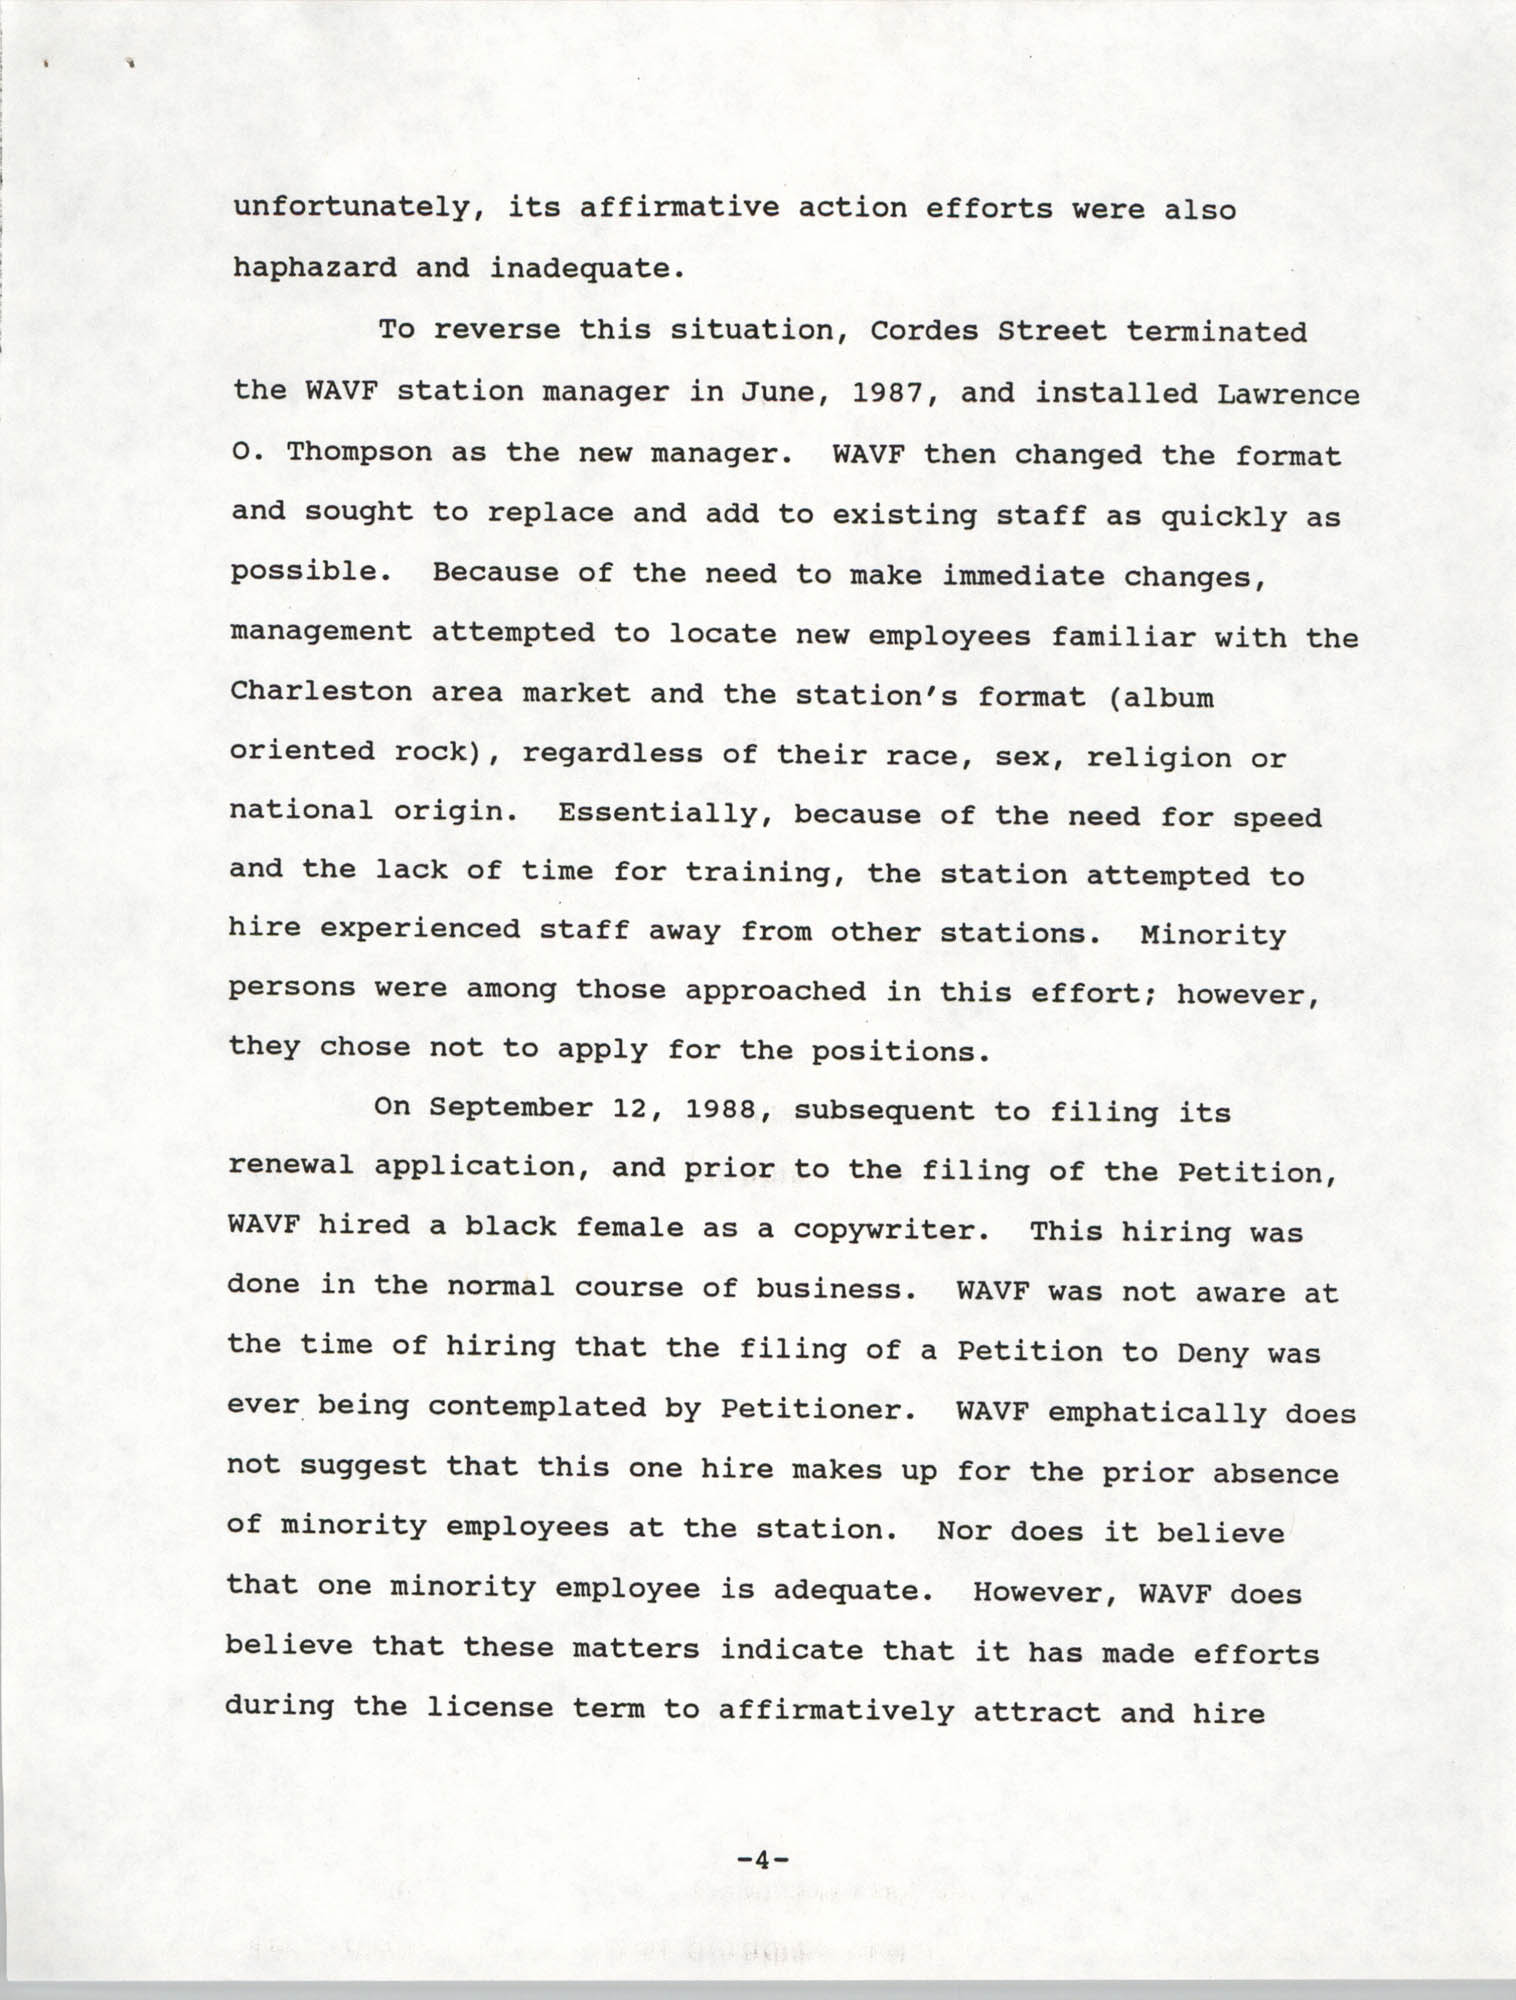 Federal Communications Commission In the Matter of Cordes Street Communications, Inc., Page 4